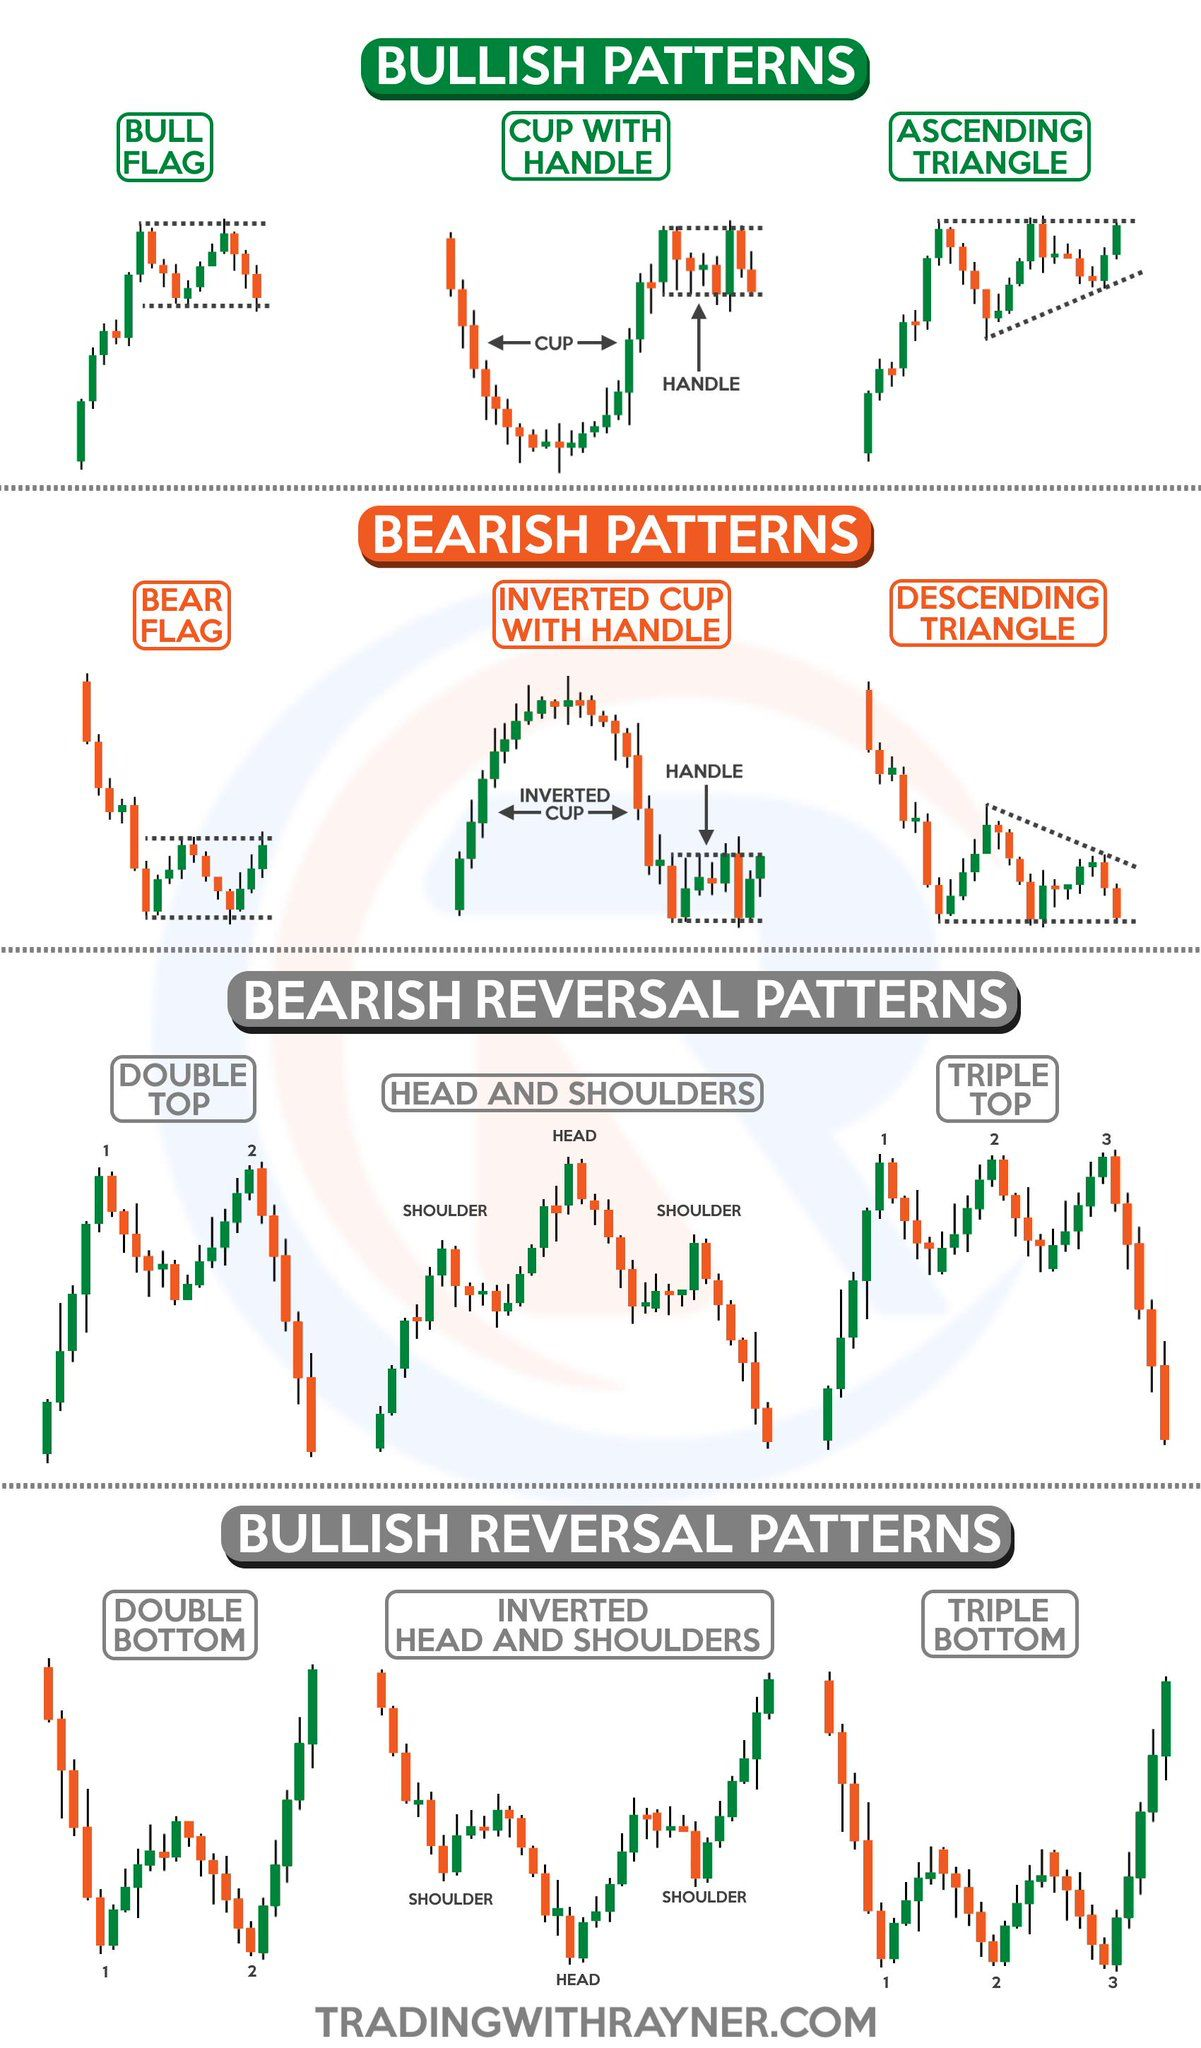 Pin By Jamaican Dude On Trading Charts Stock Options Trading